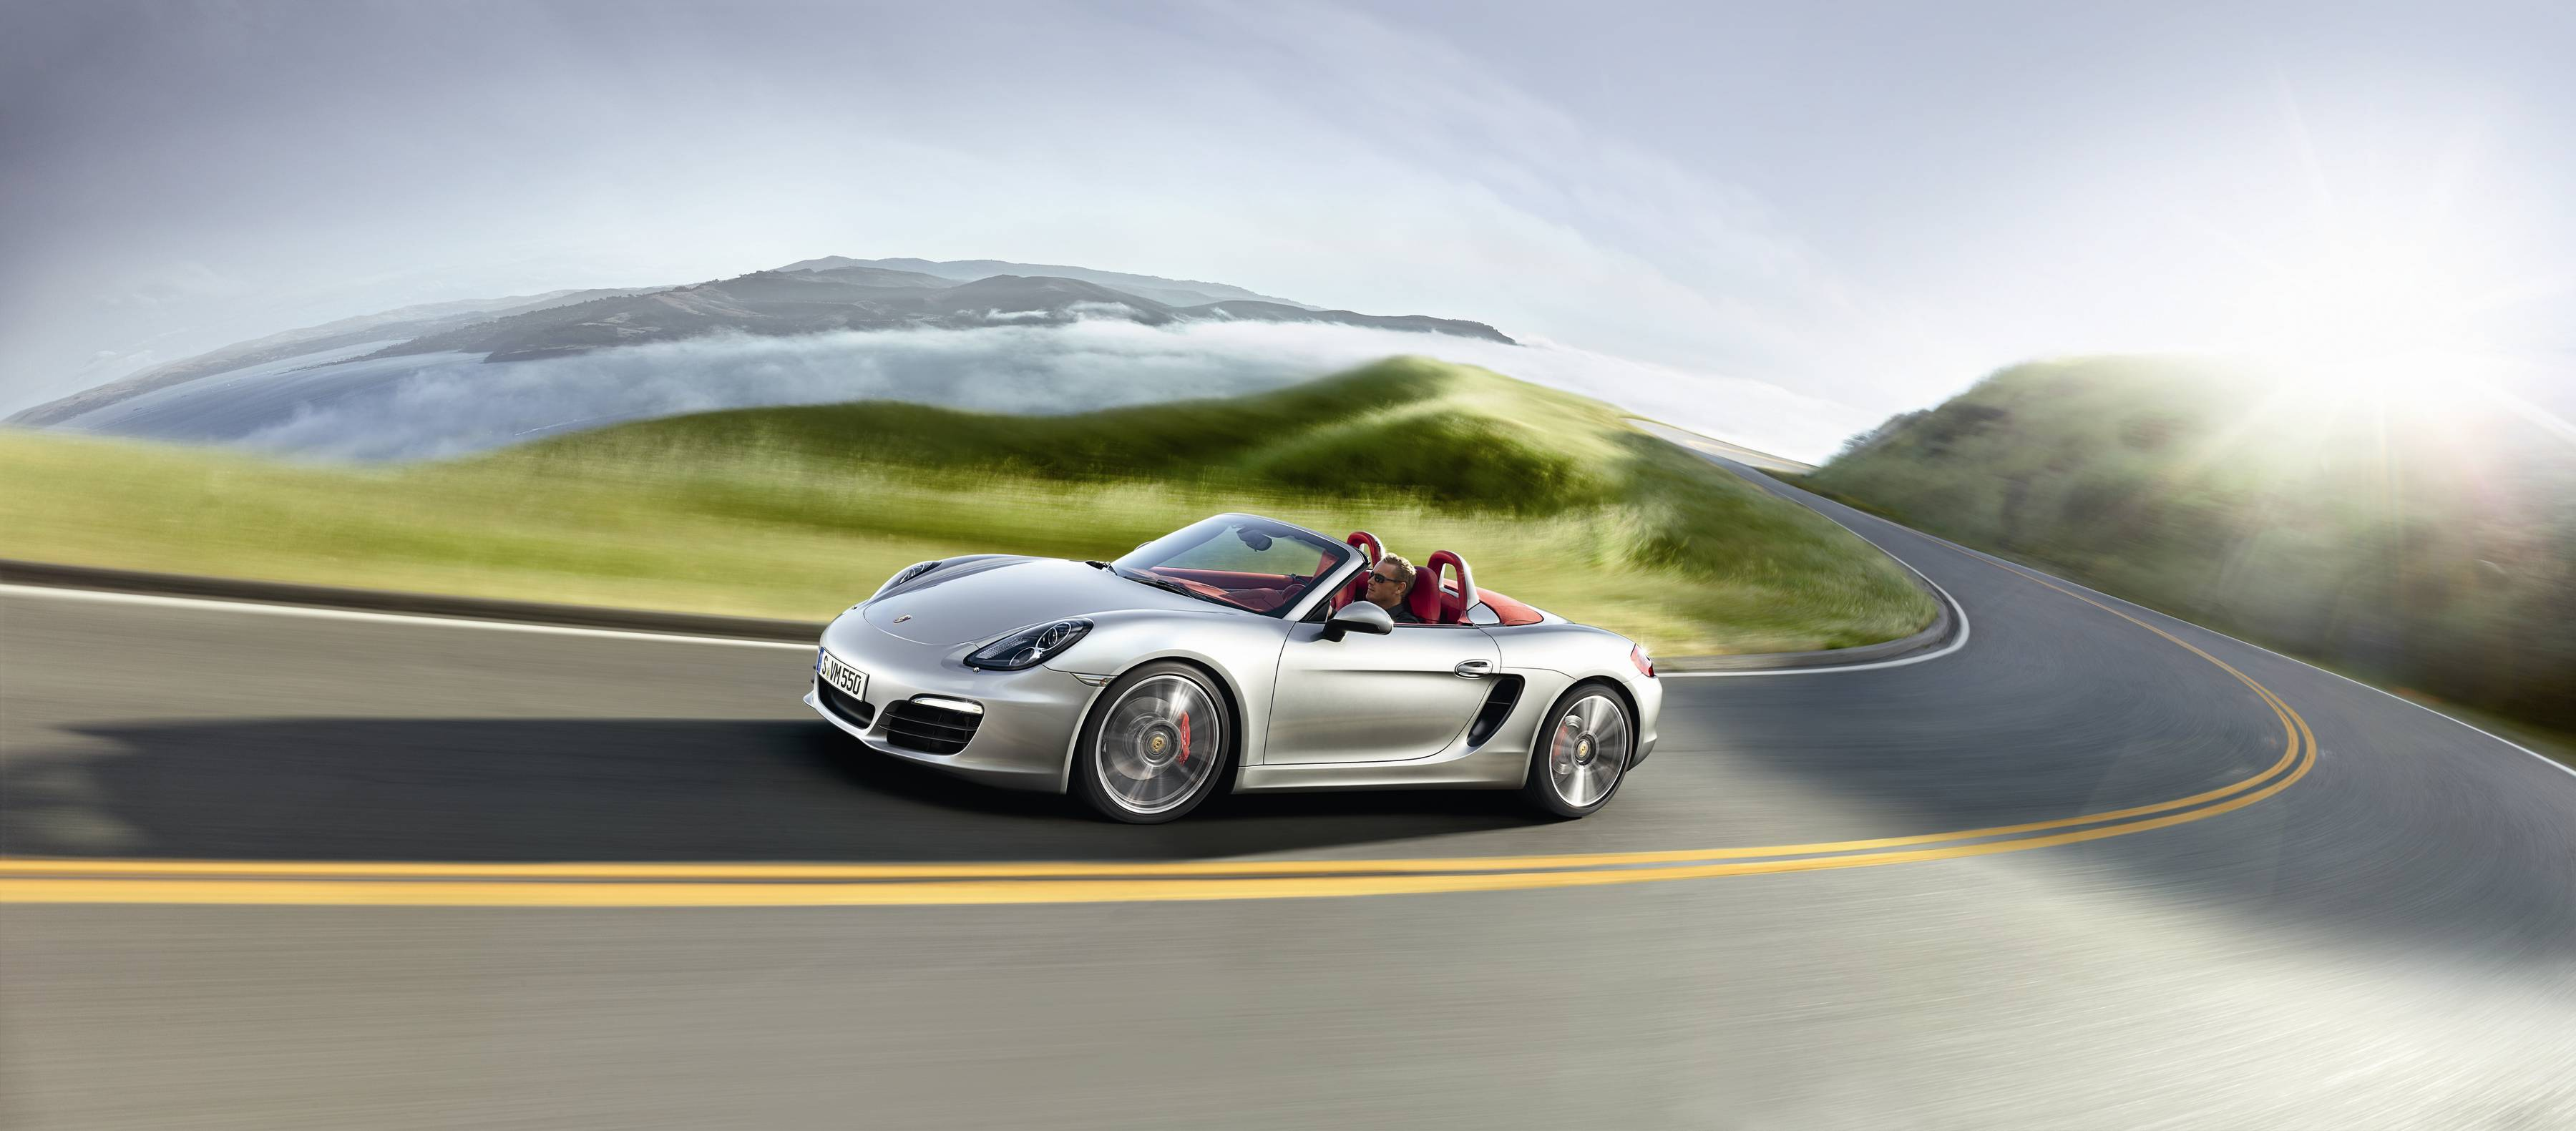 High Demand For New Boxster Requres Production at Volkswagen Facility